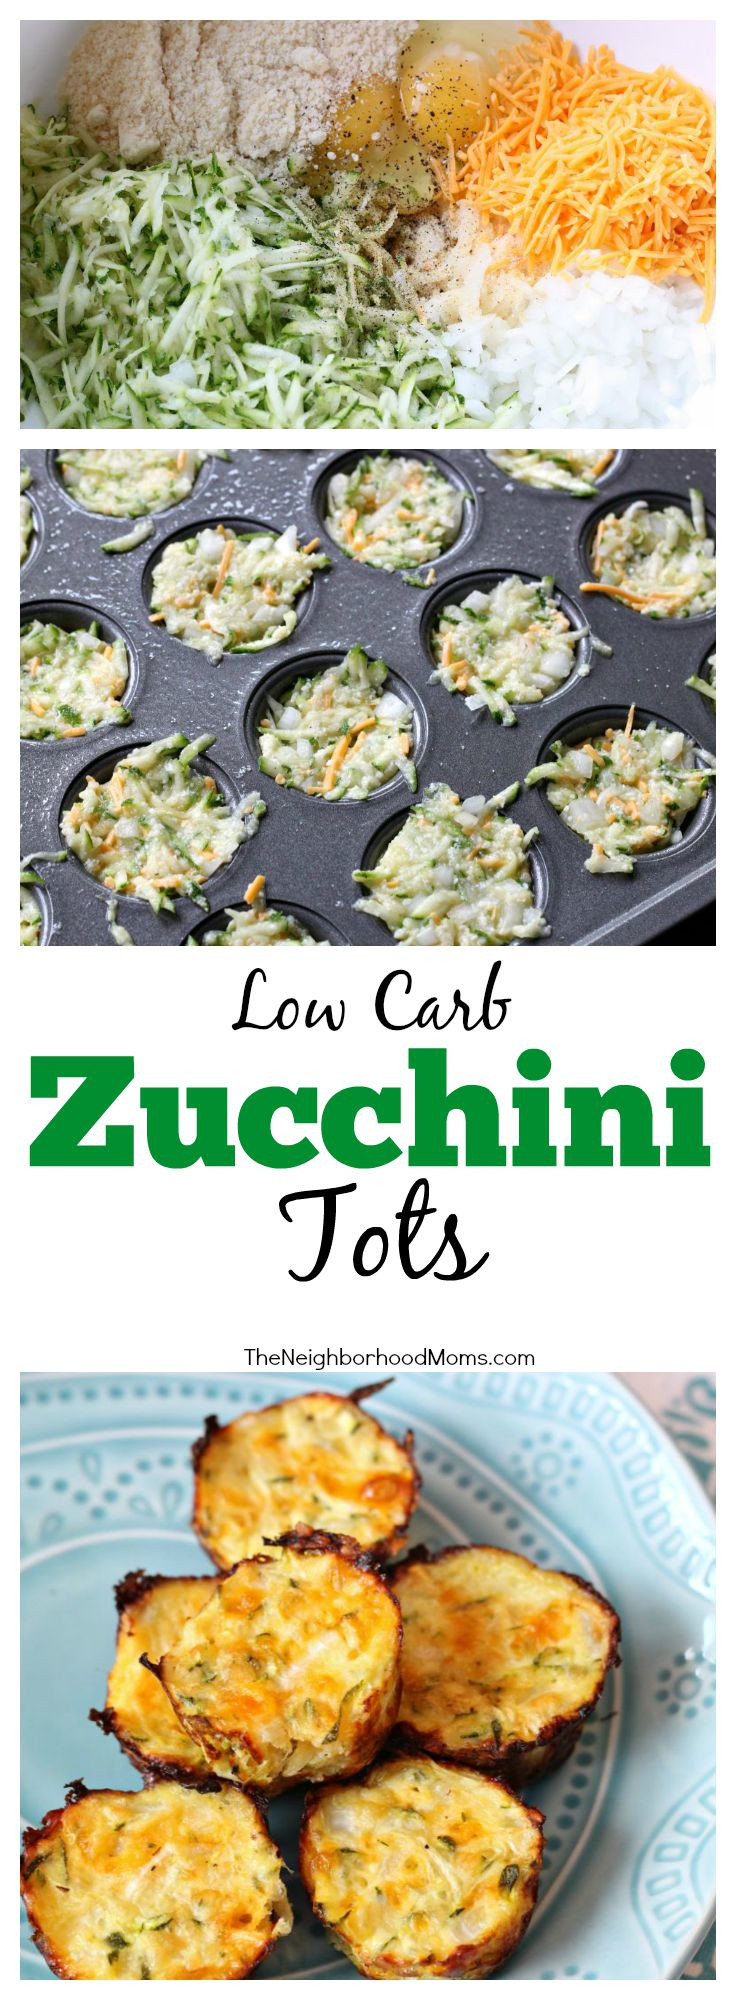 Low Carb Zucchini Recipes  Low Carb Zucchini Tots The Neighborhood Moms